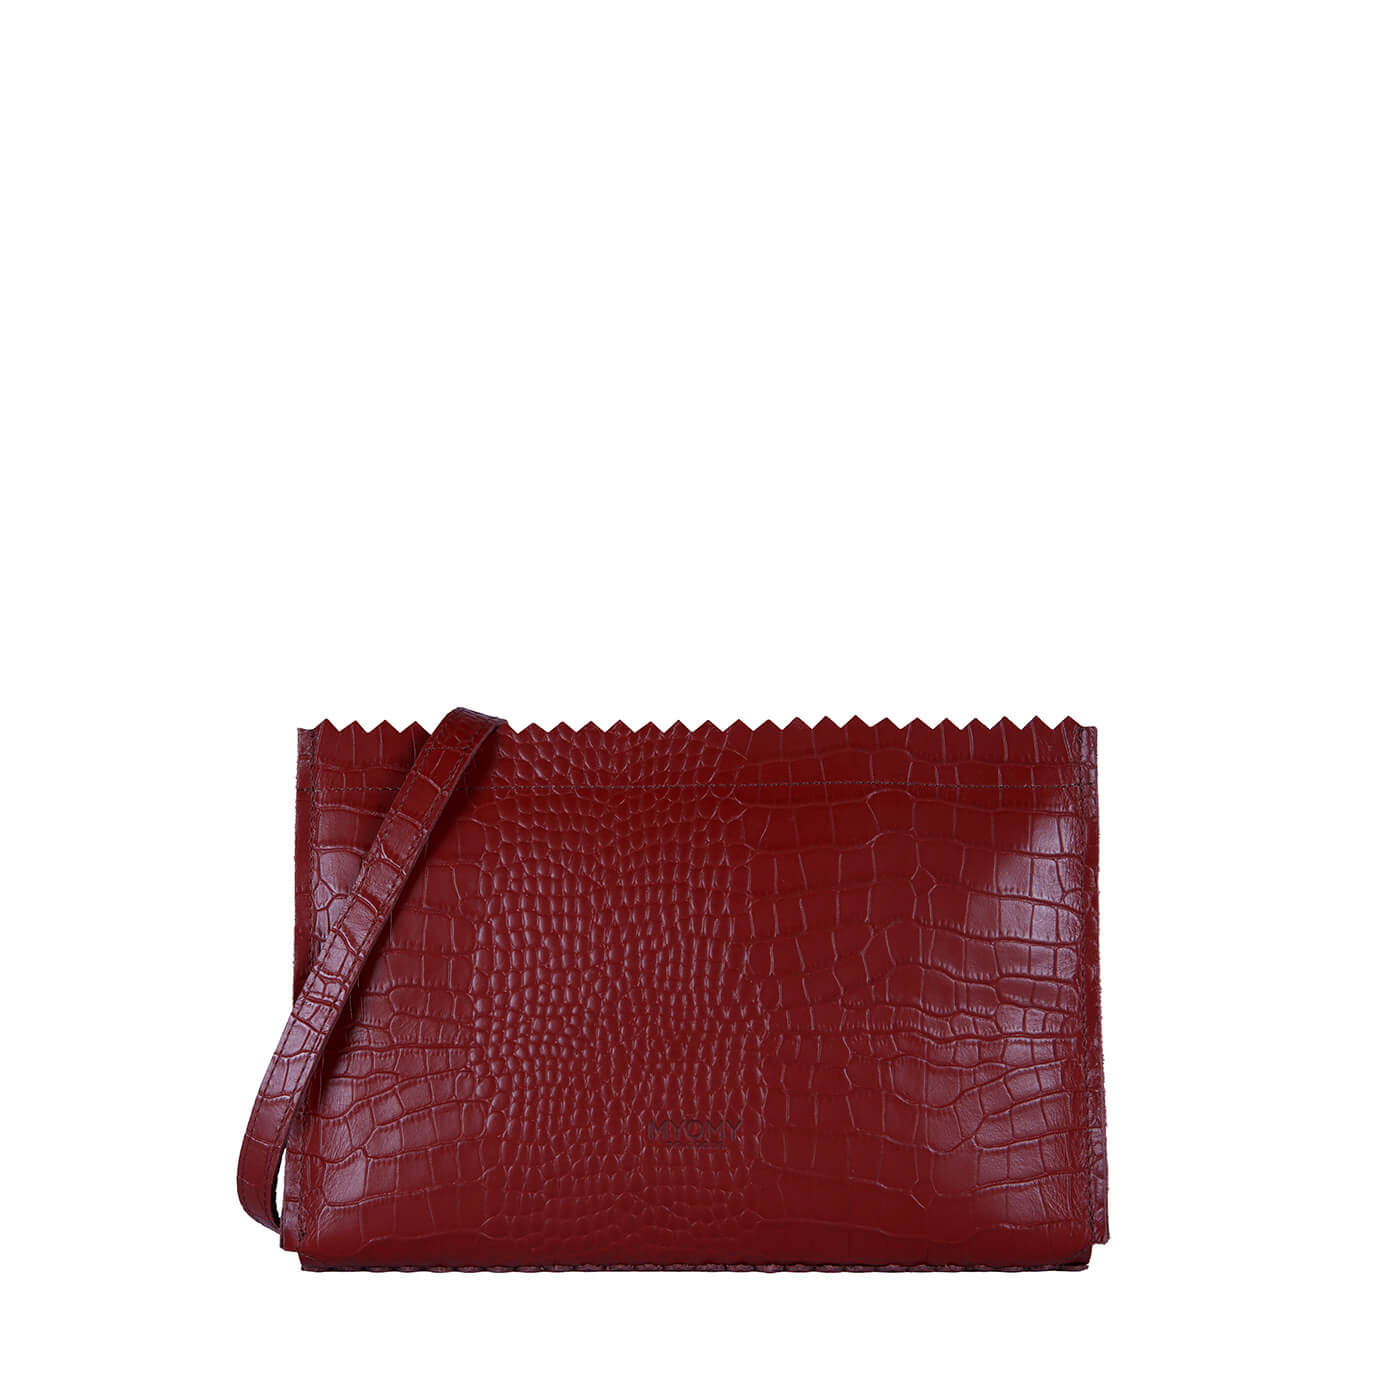 [PRE-ORDER] MY PAPER BAG Mini – croco burgundy